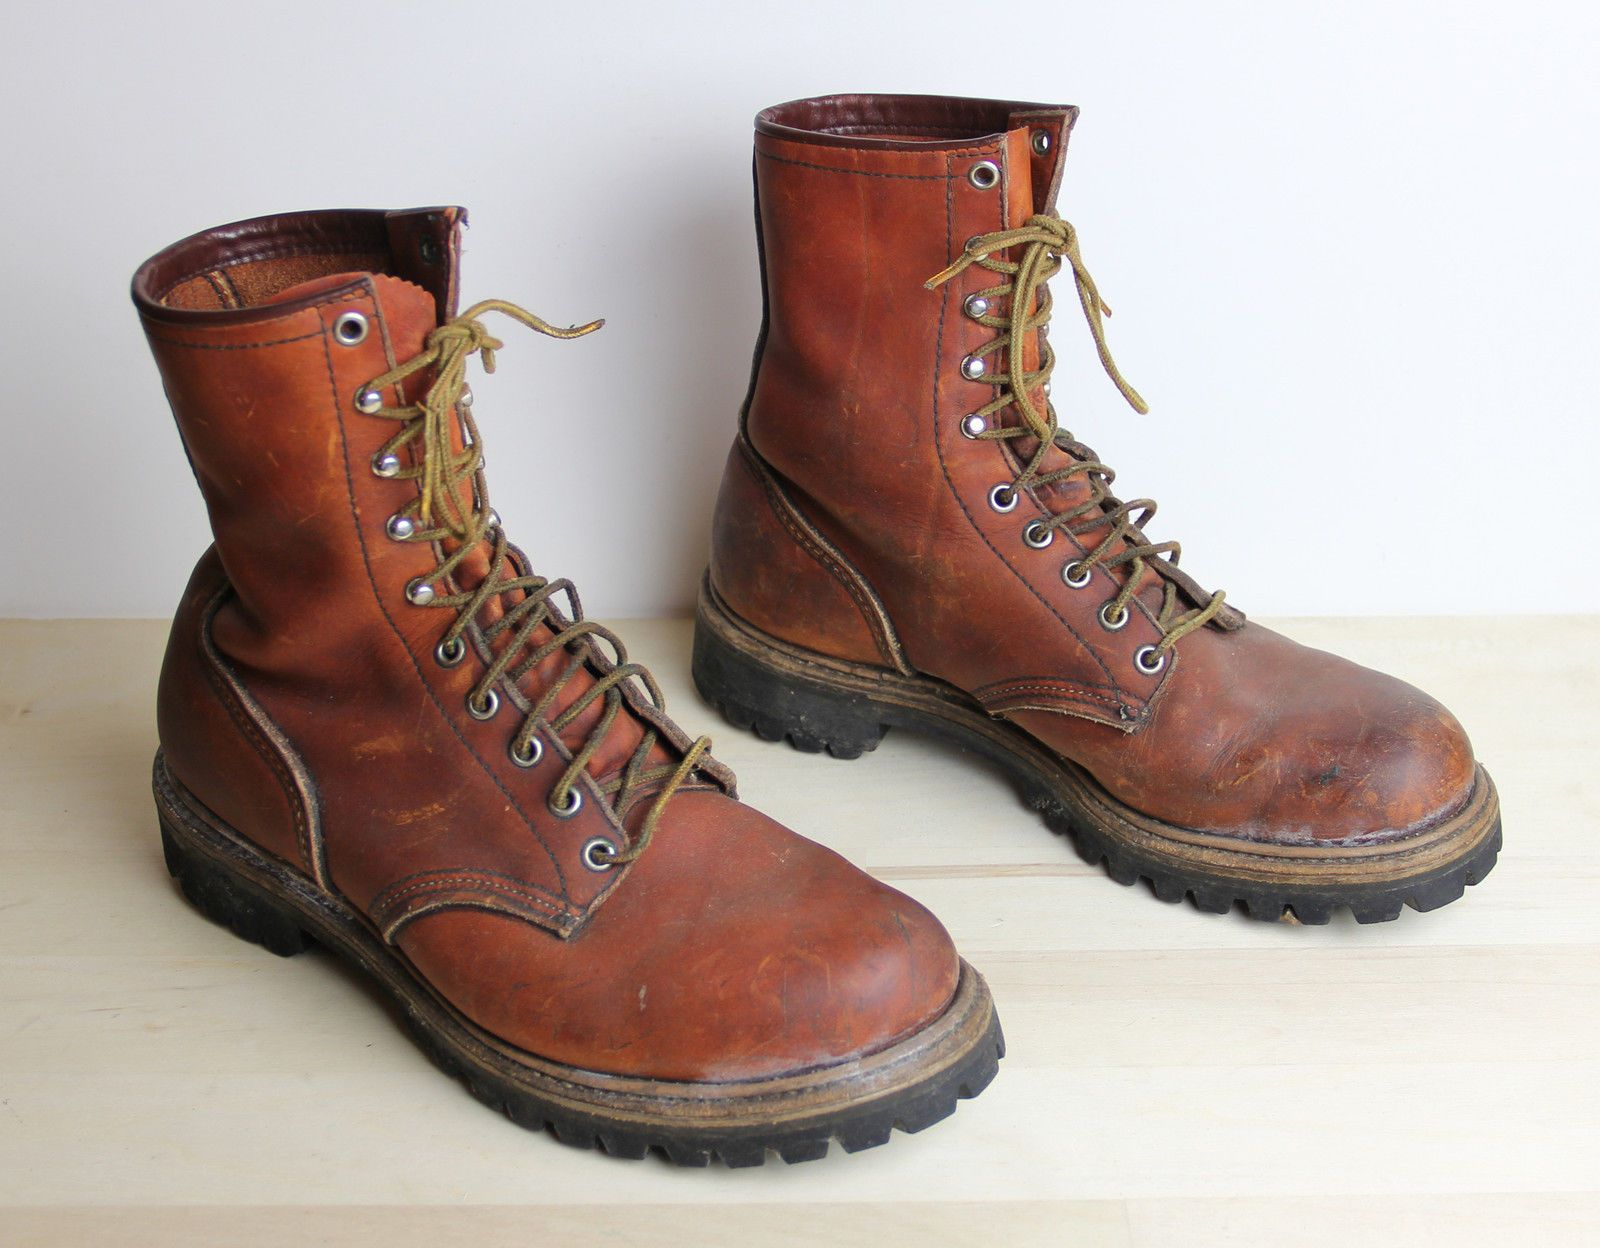 Vintage RED WING IRISH SETTER Boots Mens Size 8.5 D Hunting Hiking Made in  USA |